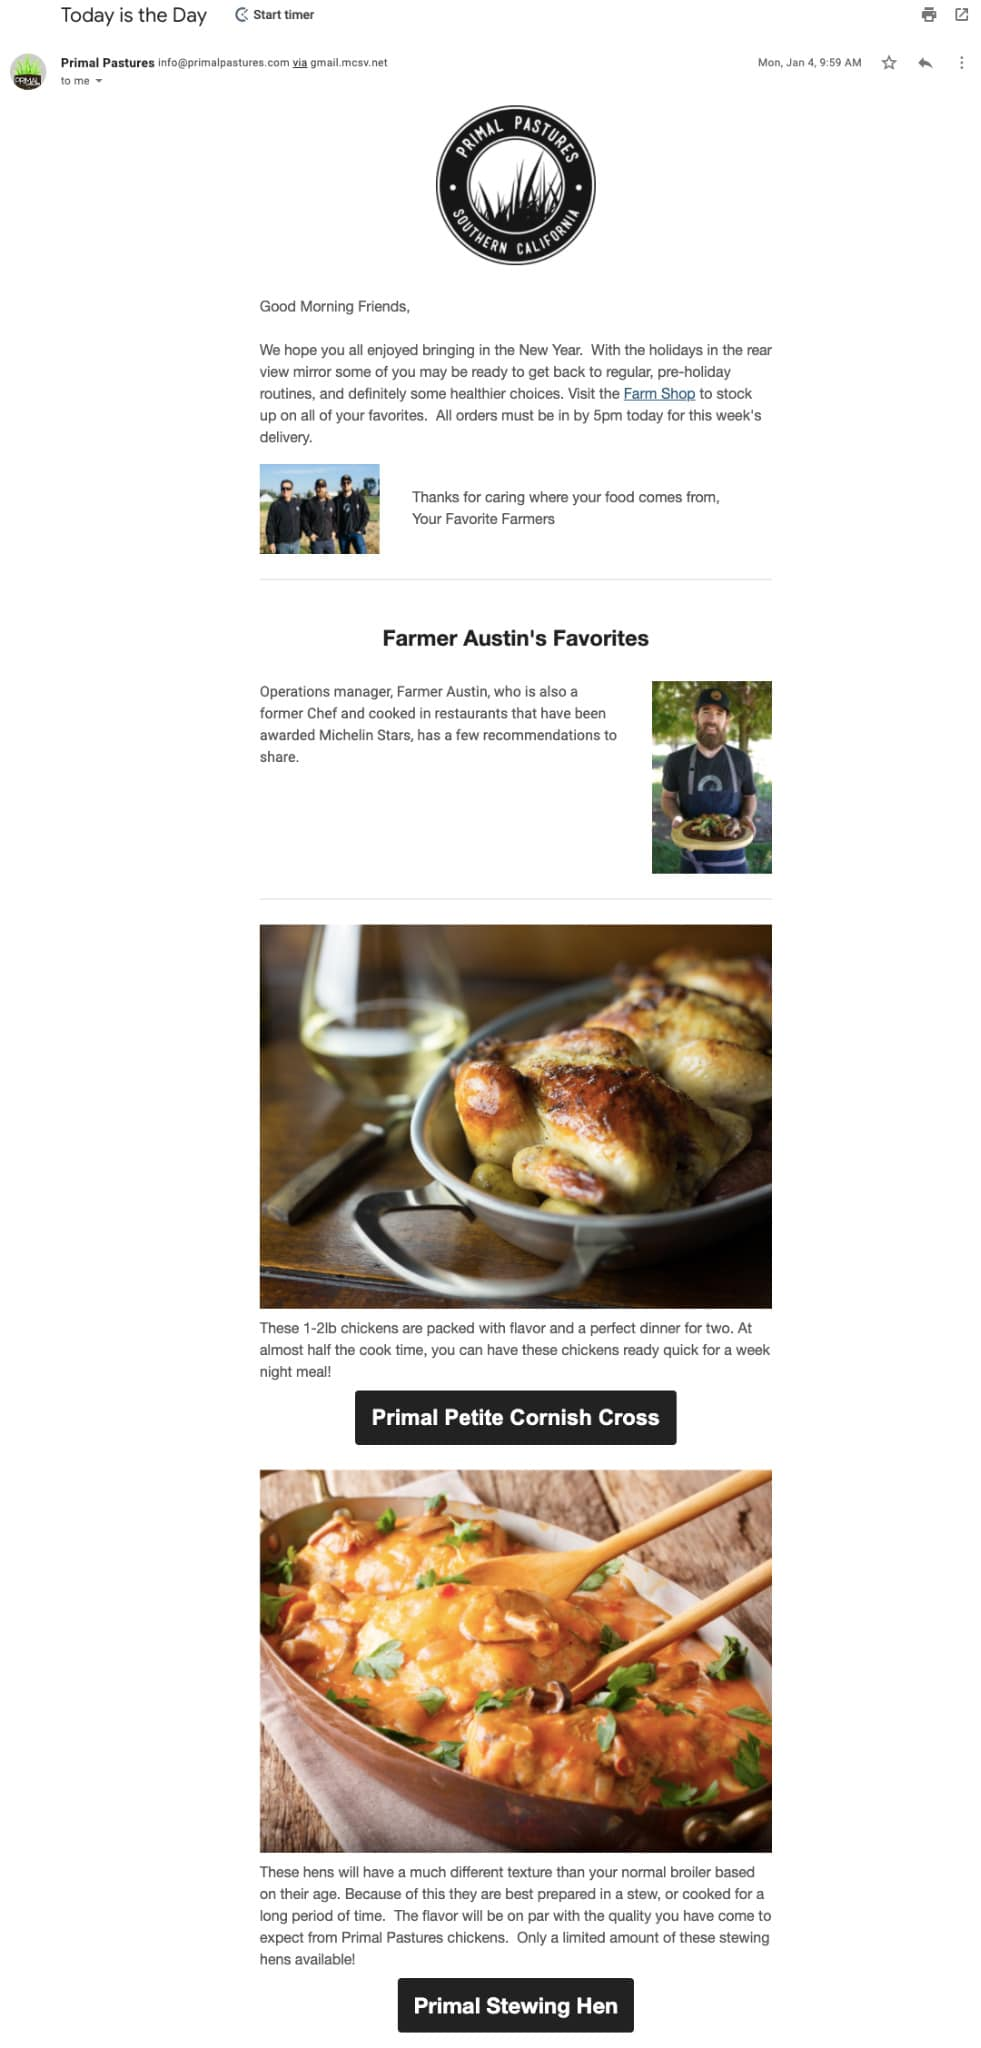 Holiday email from Primal Pastures